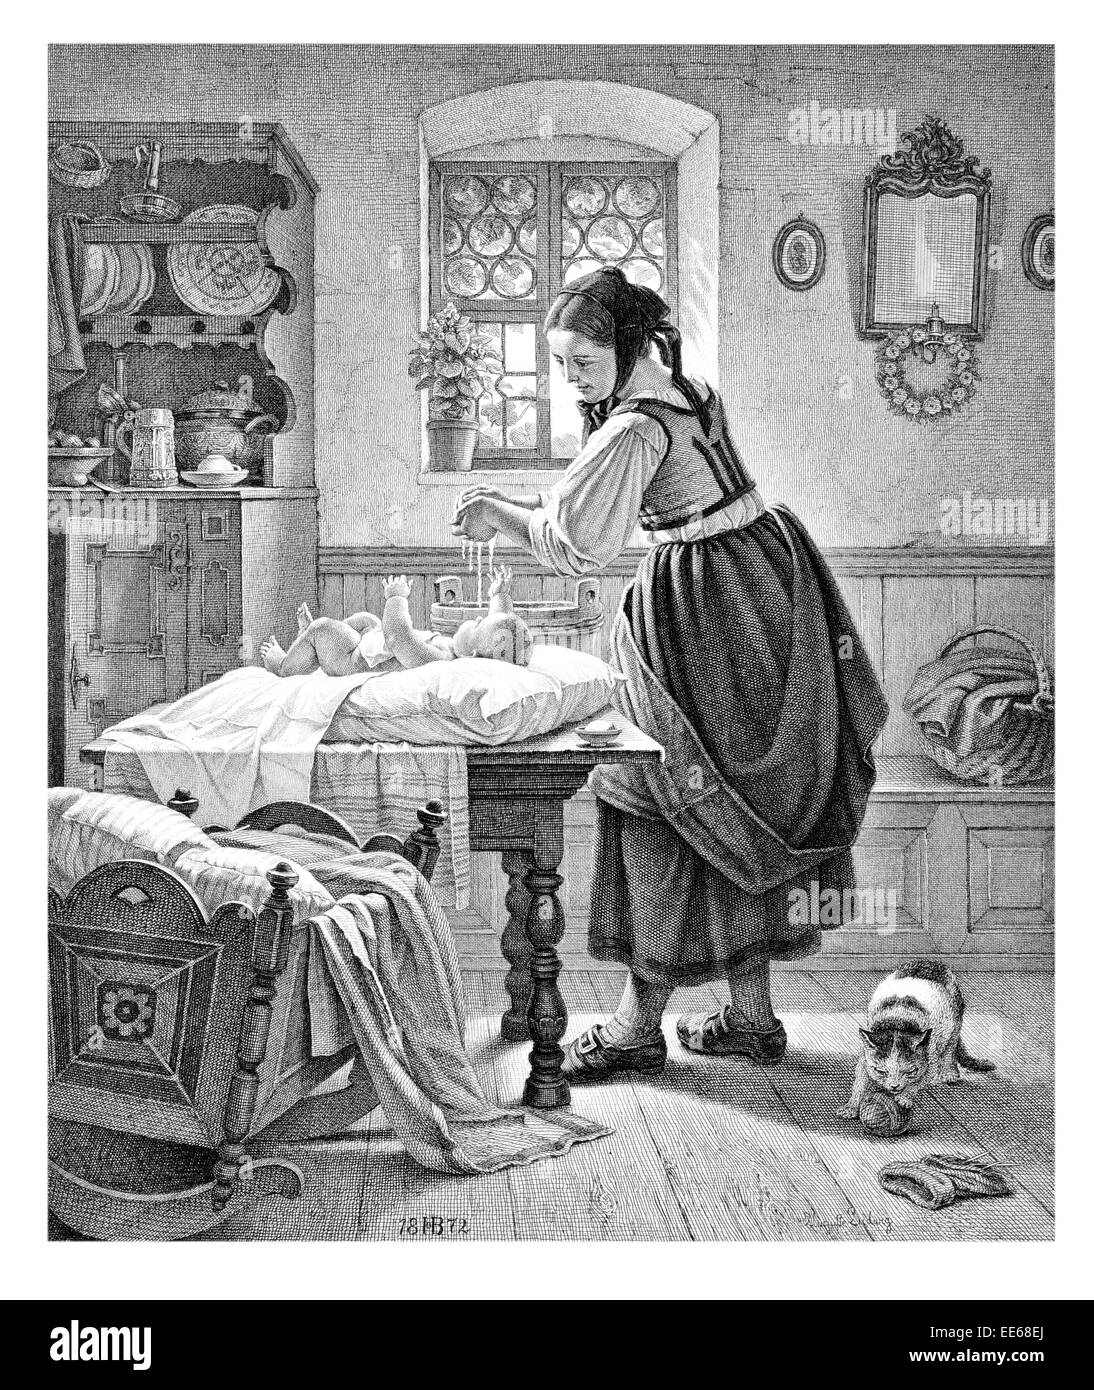 The Toilette A Ludwig changing baby babies nappy mother child infant new born period costume dress home kitchen - Stock Image